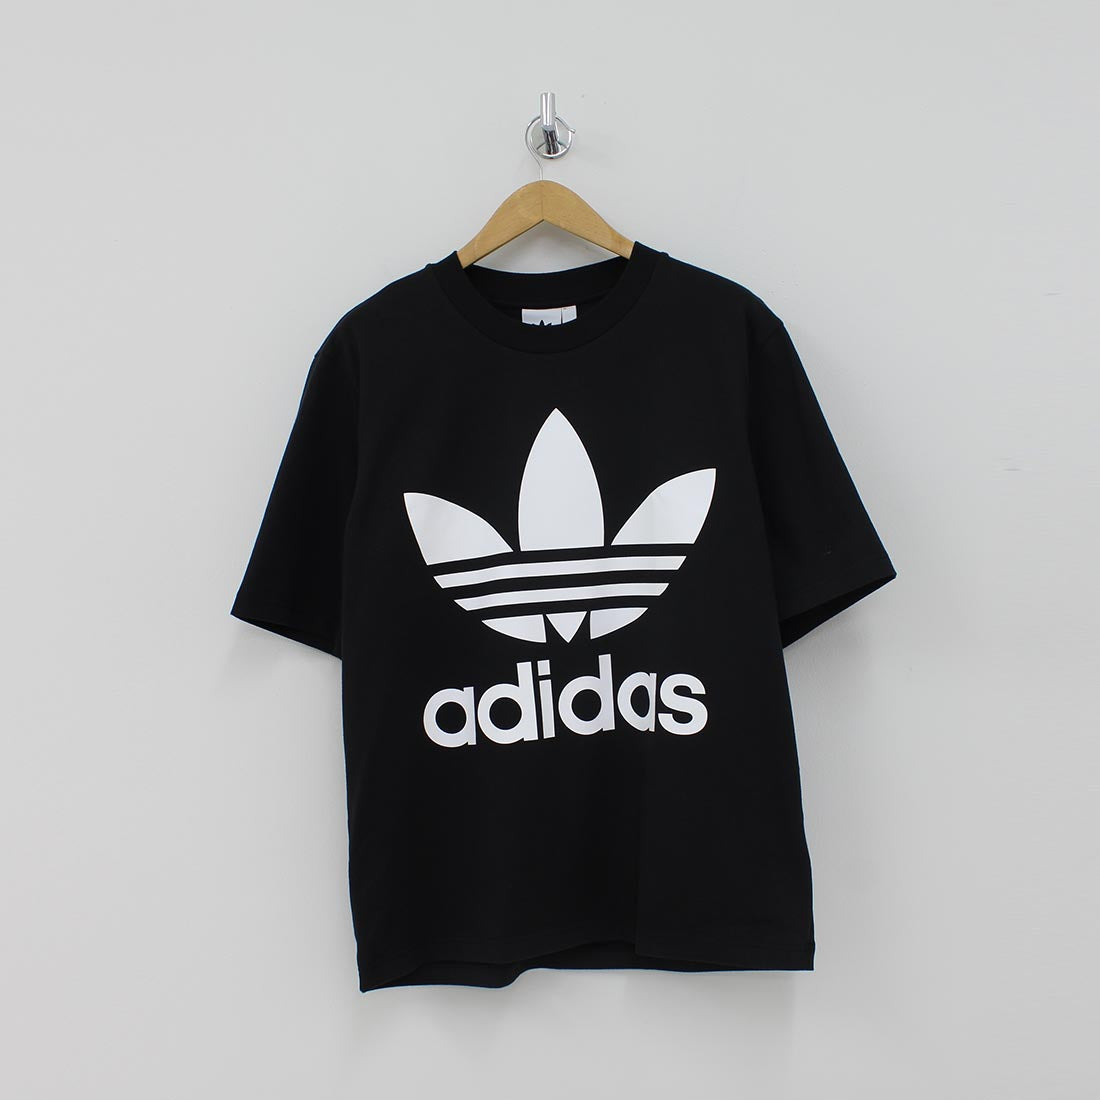 Adidas Originals Oversized T-Shirt Black